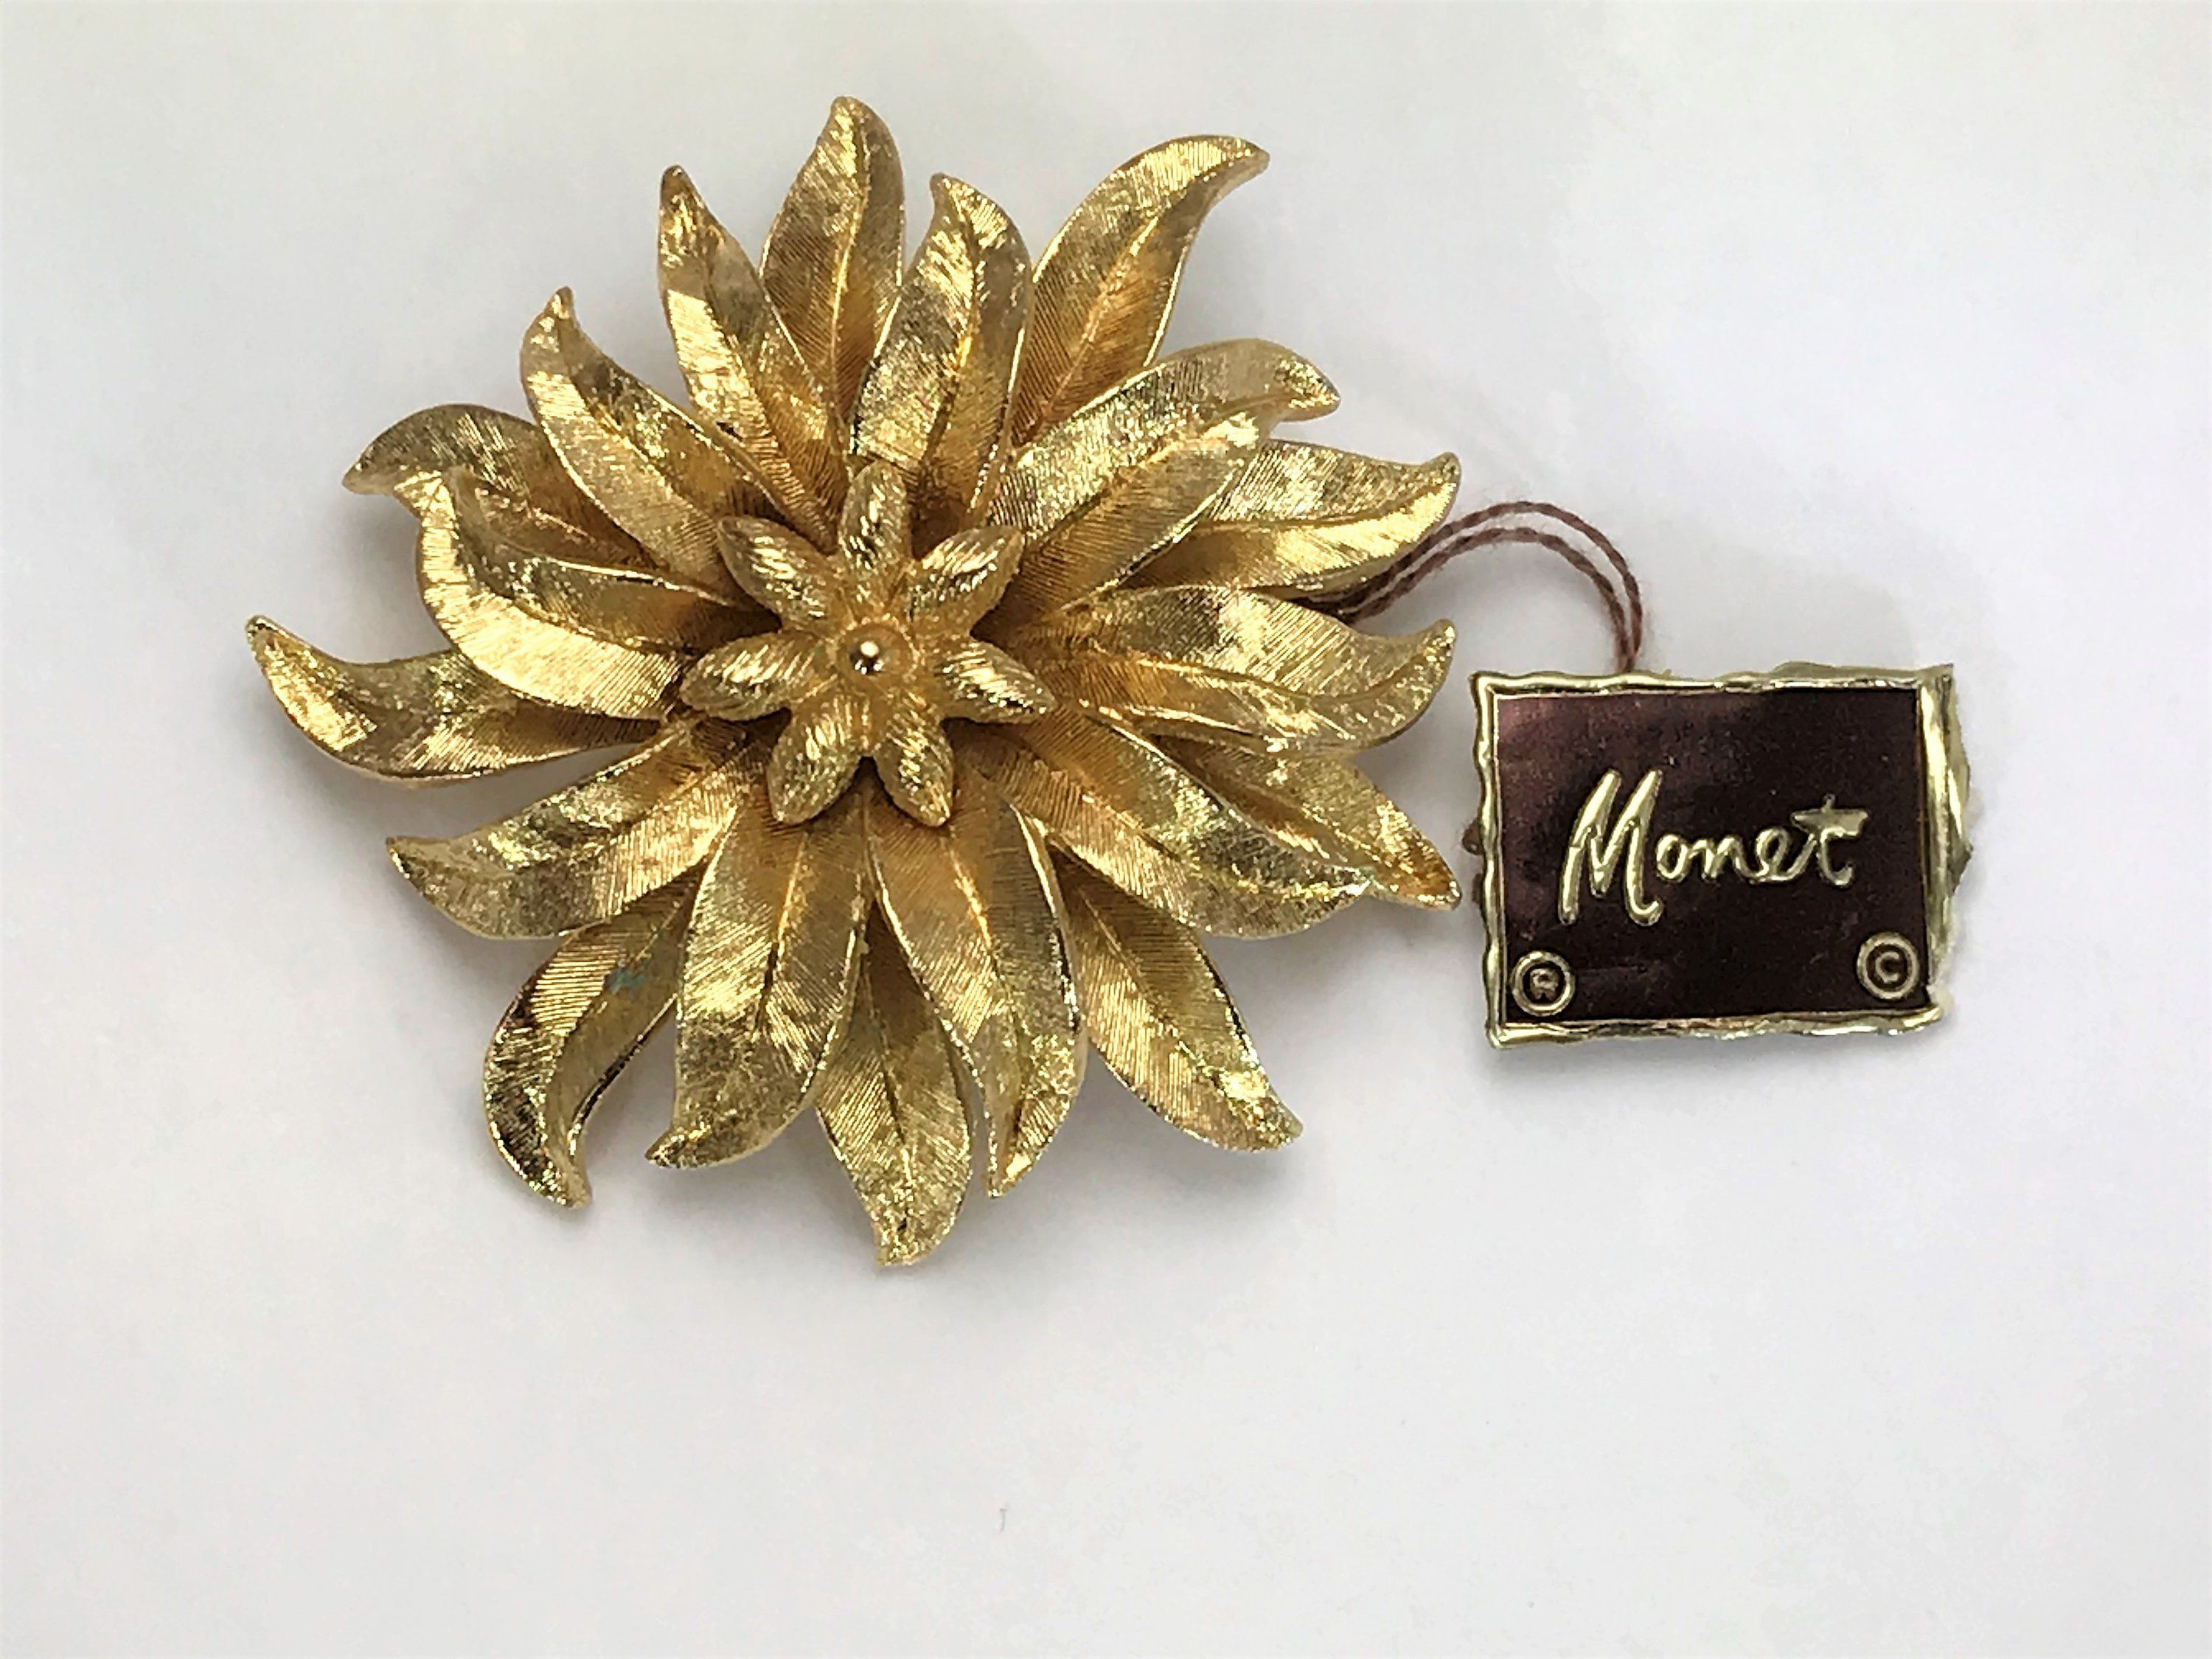 1a2c6c0f8 Beautiful Vintage MONET Margo Gold Tone Flower Brooch 1960's with Original  Tag by LoubooluJewellery on Etsy